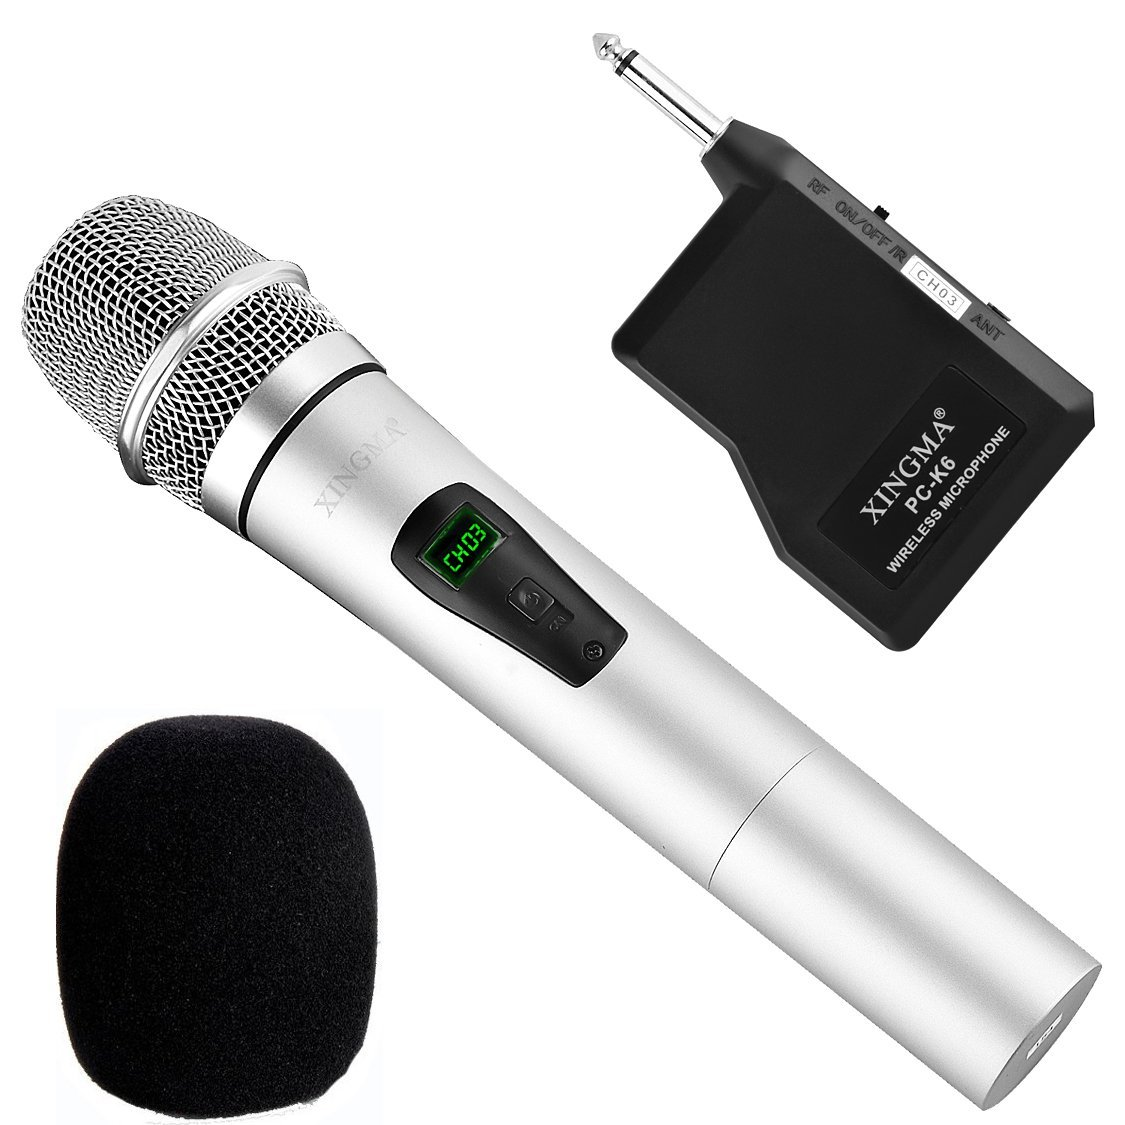 1. Xingma UHF Rechargeable Handheld Wireless Karaoke Microphone